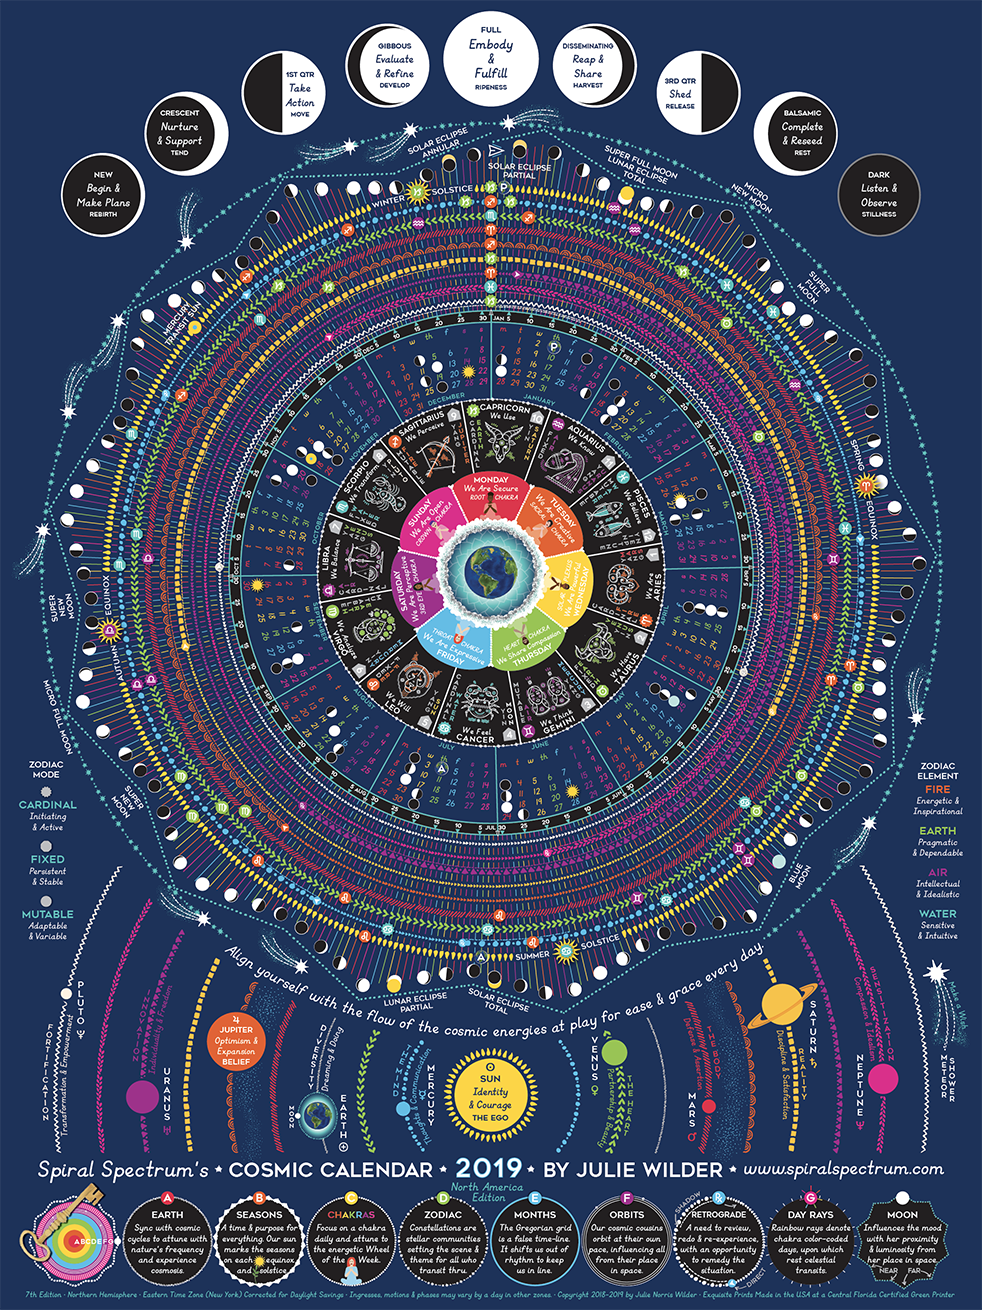 Year Of Grace Calendar 2019 With Cosmic Spiral Spectrum